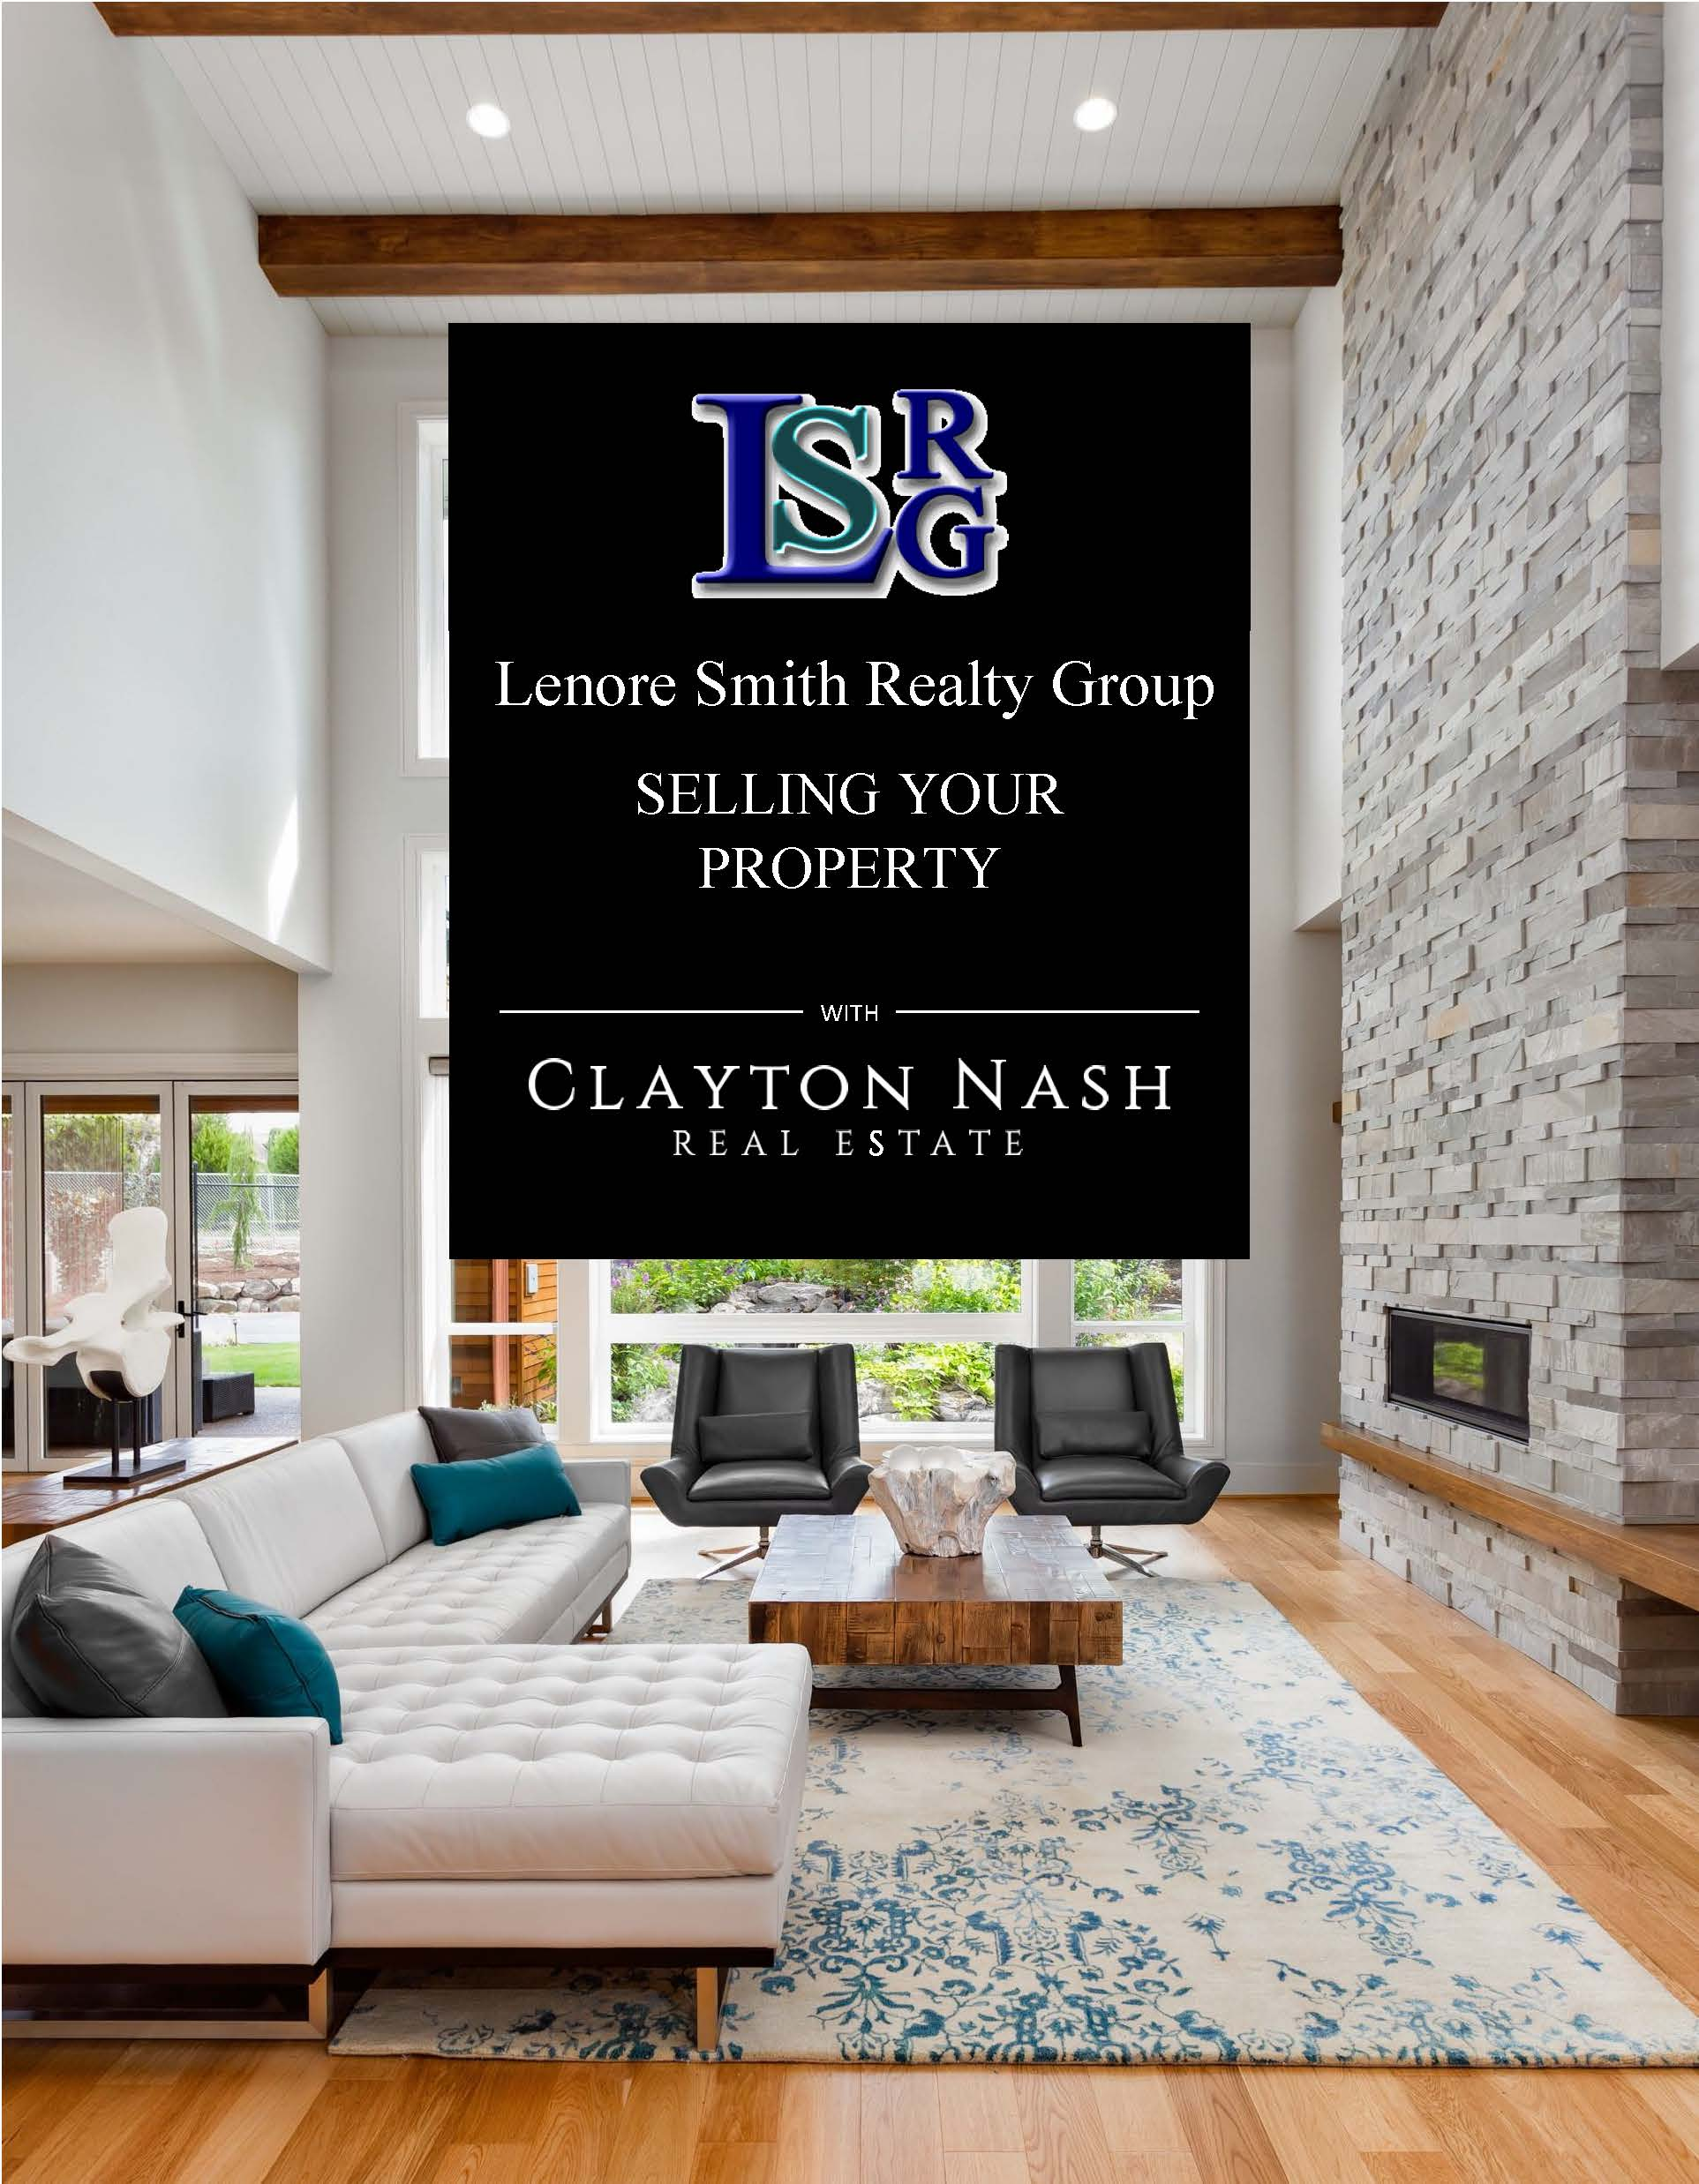 Lenore Smith Realty Group Listing Presentation